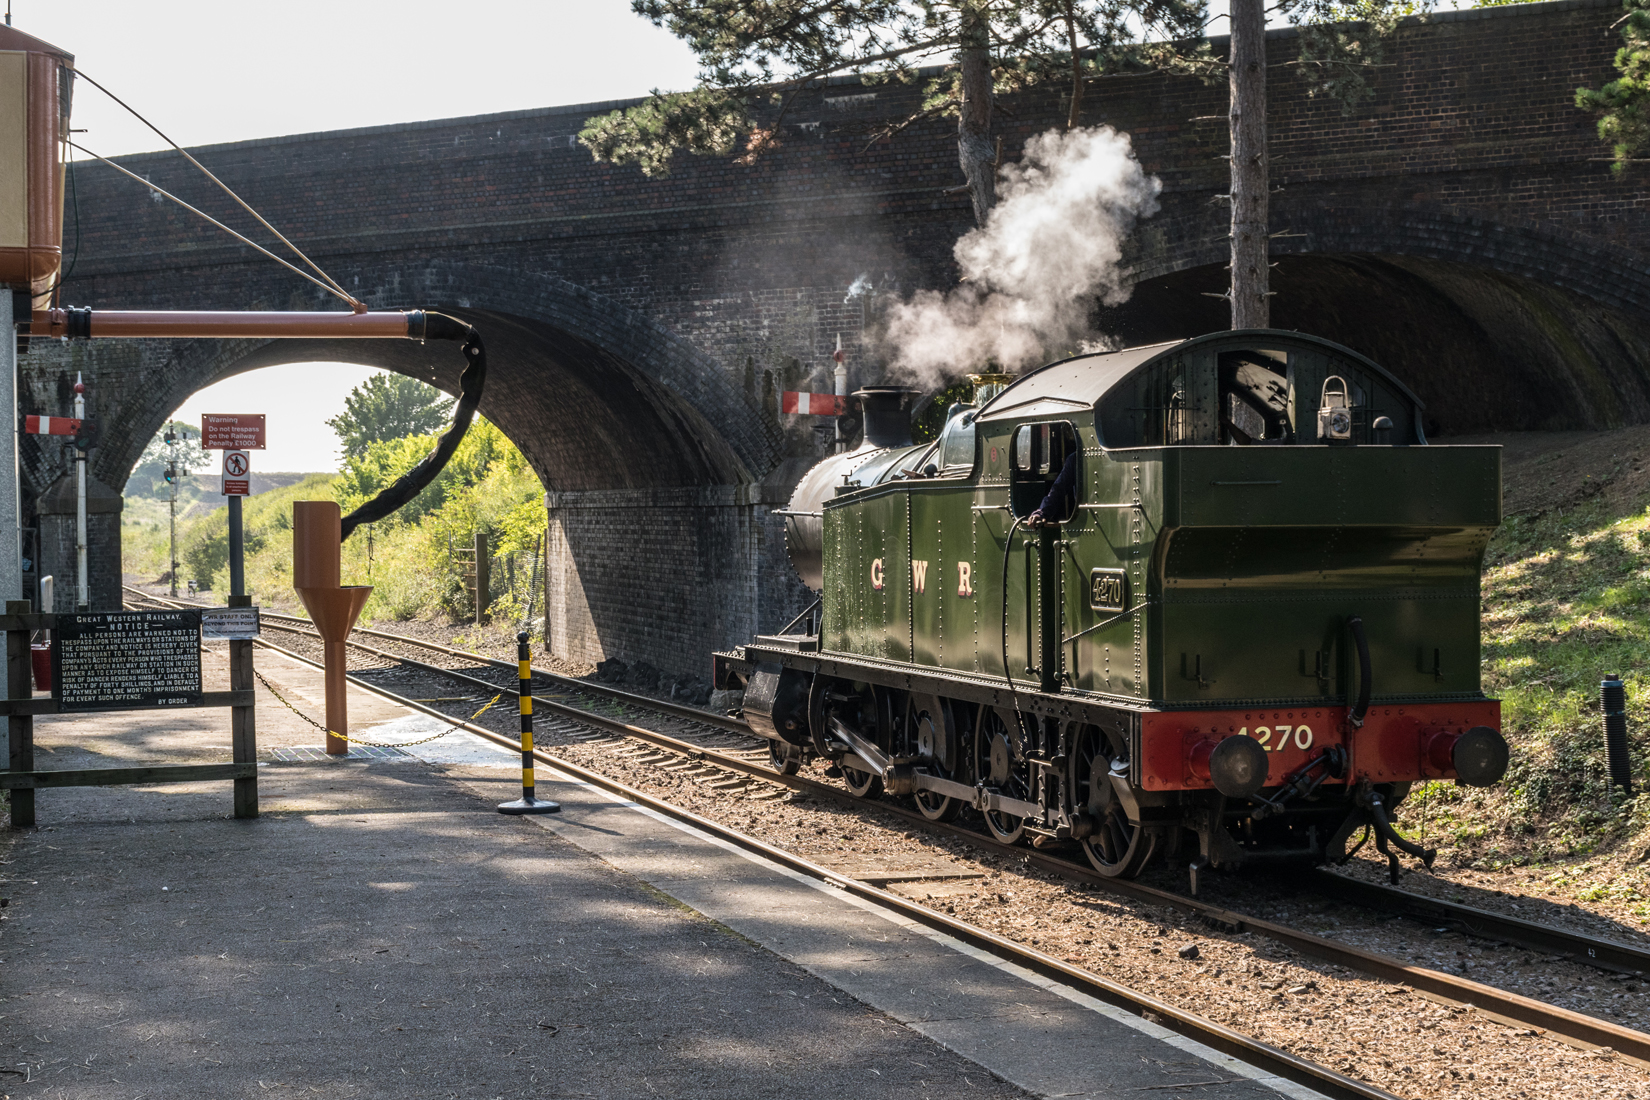 4270 'runs round' its carriage stock